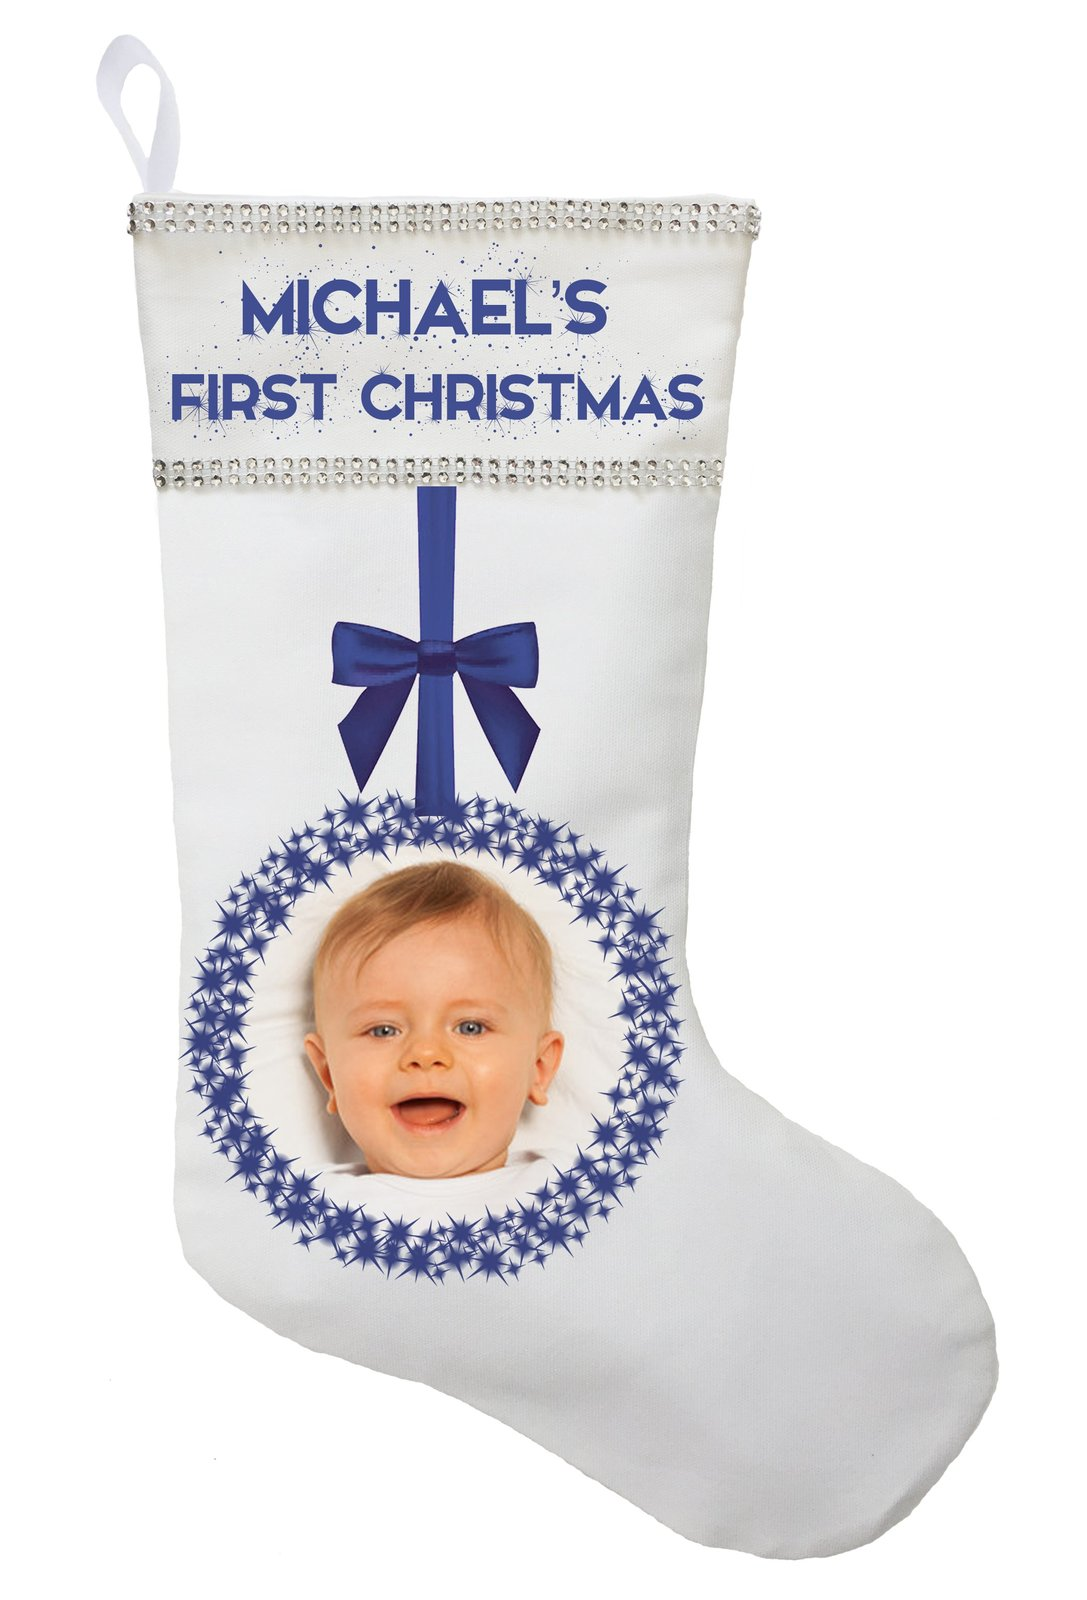 First Christmas Stocking with Photo - Personalized and Hand Made image 2